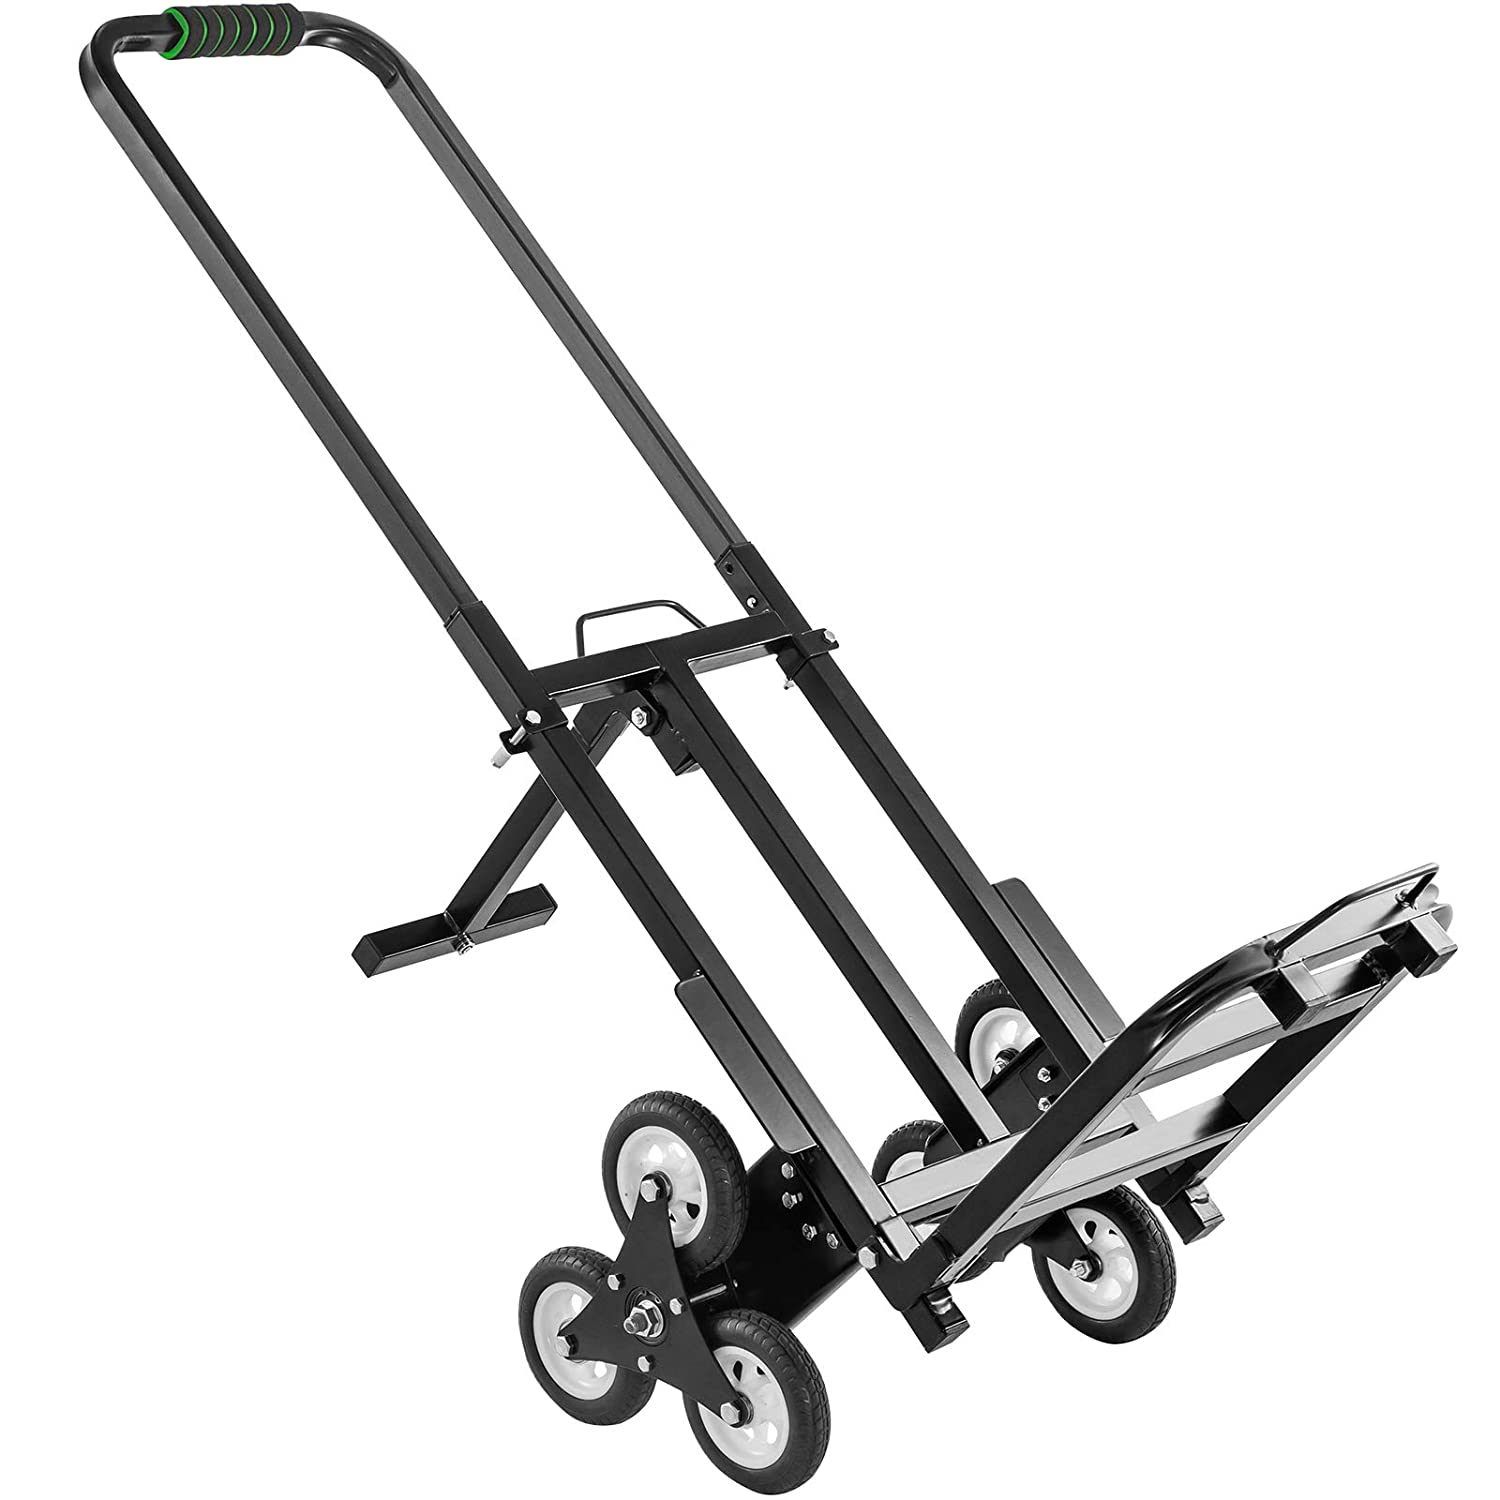 Vevor Stair Climbing Cart Portable Climbing Cart 330 Lb Capacity All Terrain Stair Climbing Hand Truck Folding Stair Hand Truck Heavy Duty With 6 Wheels Black Amazon Com